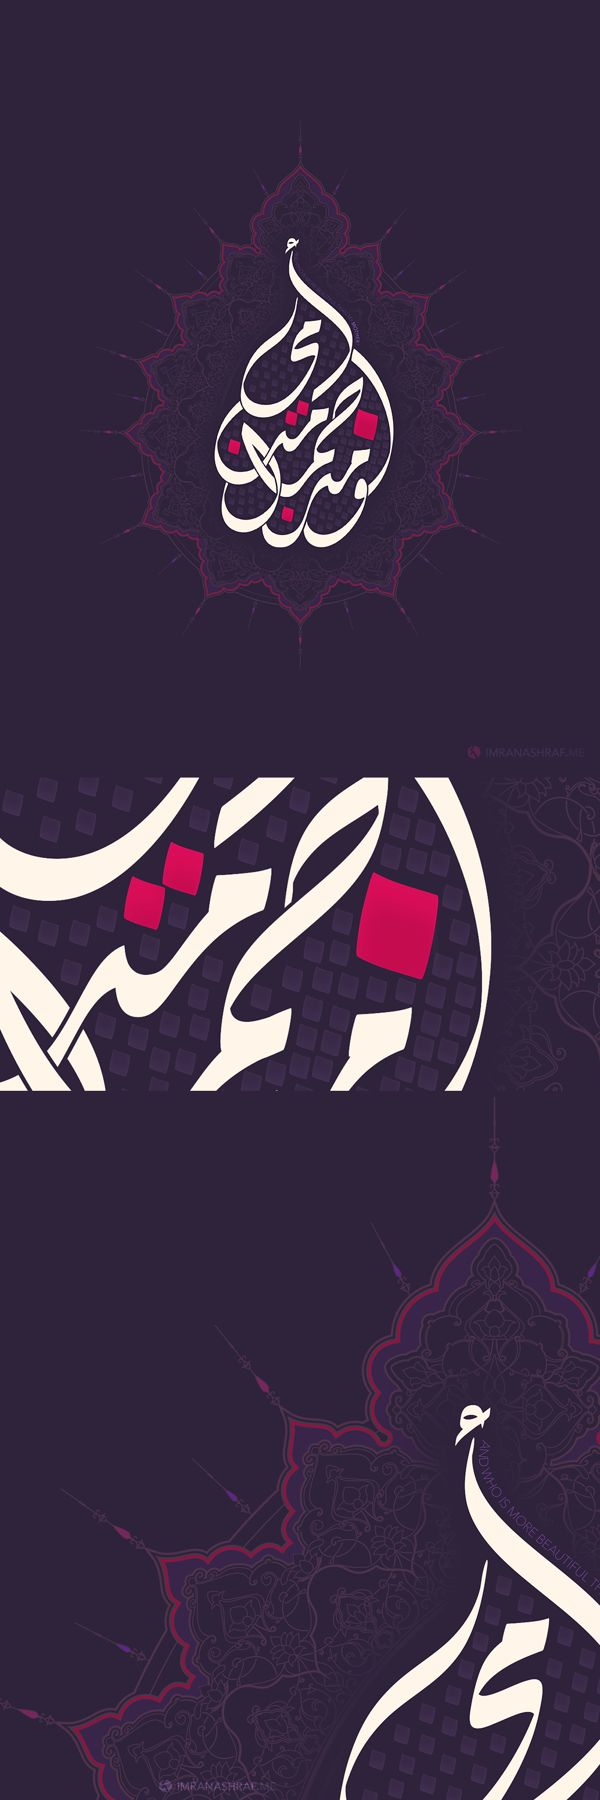 And who is more beautiful than my mother? by Imran Muhammad-Ashraf, via Behance